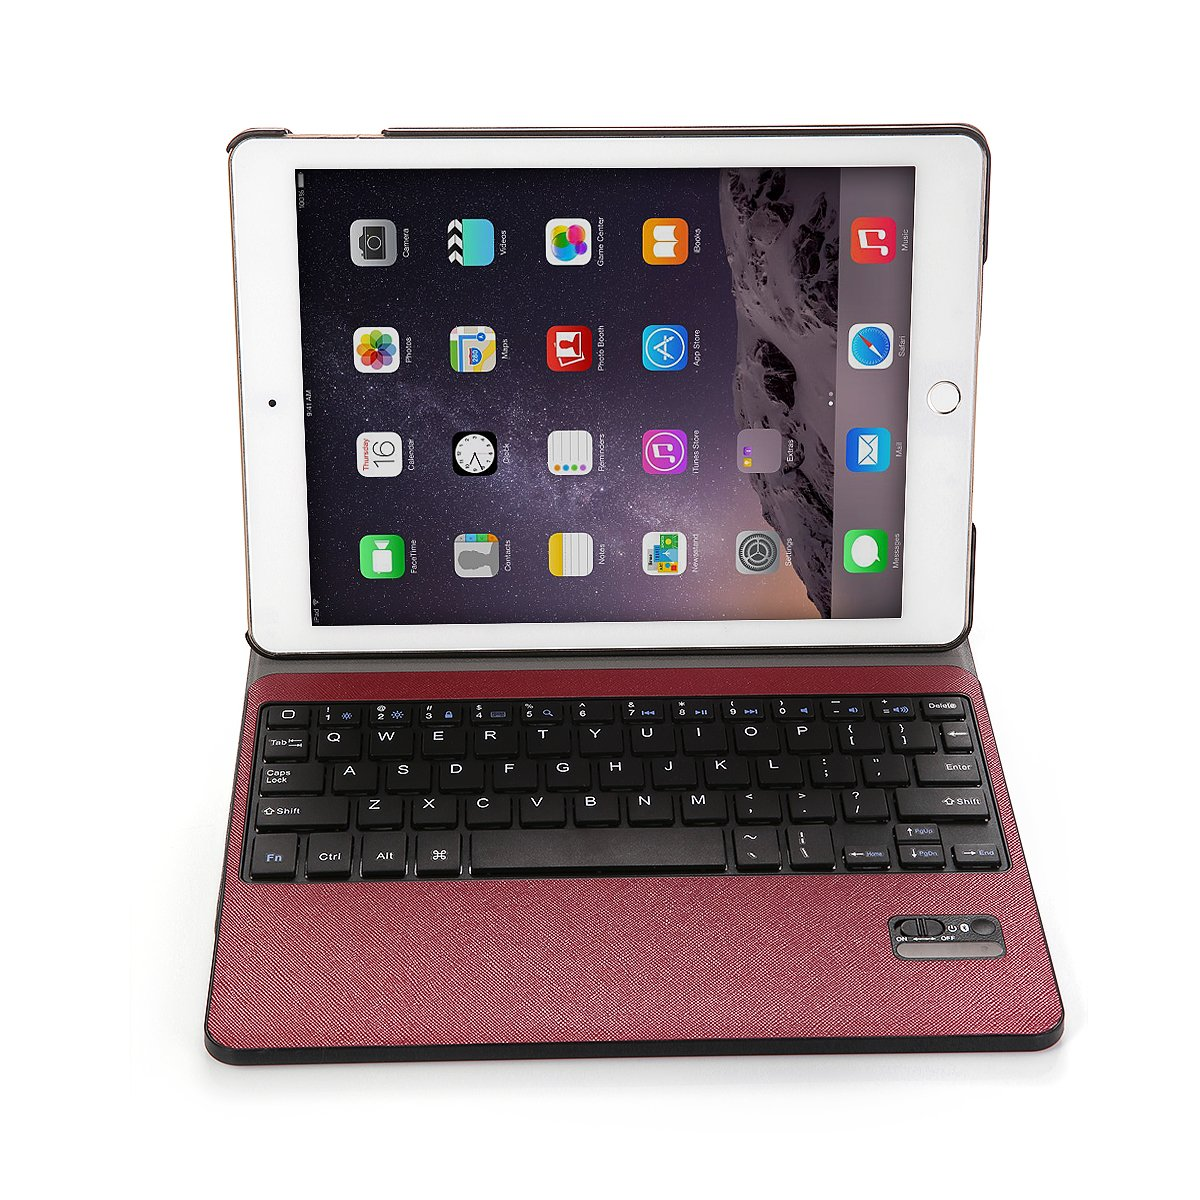 iPad Air 2 Keyboard Case, Poweradd Detachable Wireless Bluetooth Keyboard with Magnetic PU Leather Stand Case Cover for Apple iPad Air 2 iPad 6 - Red